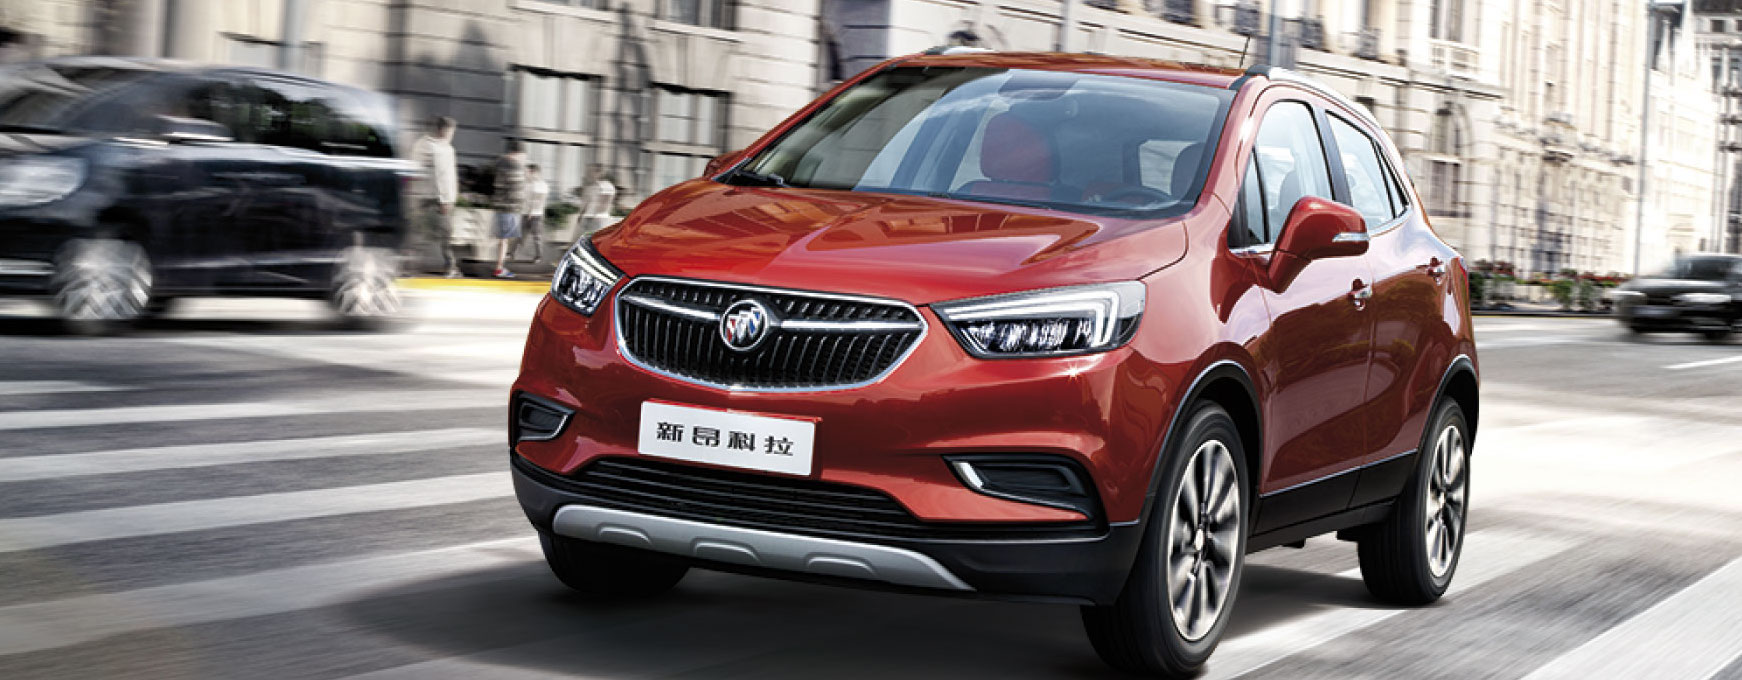 Buick Encore launched new ad campaign